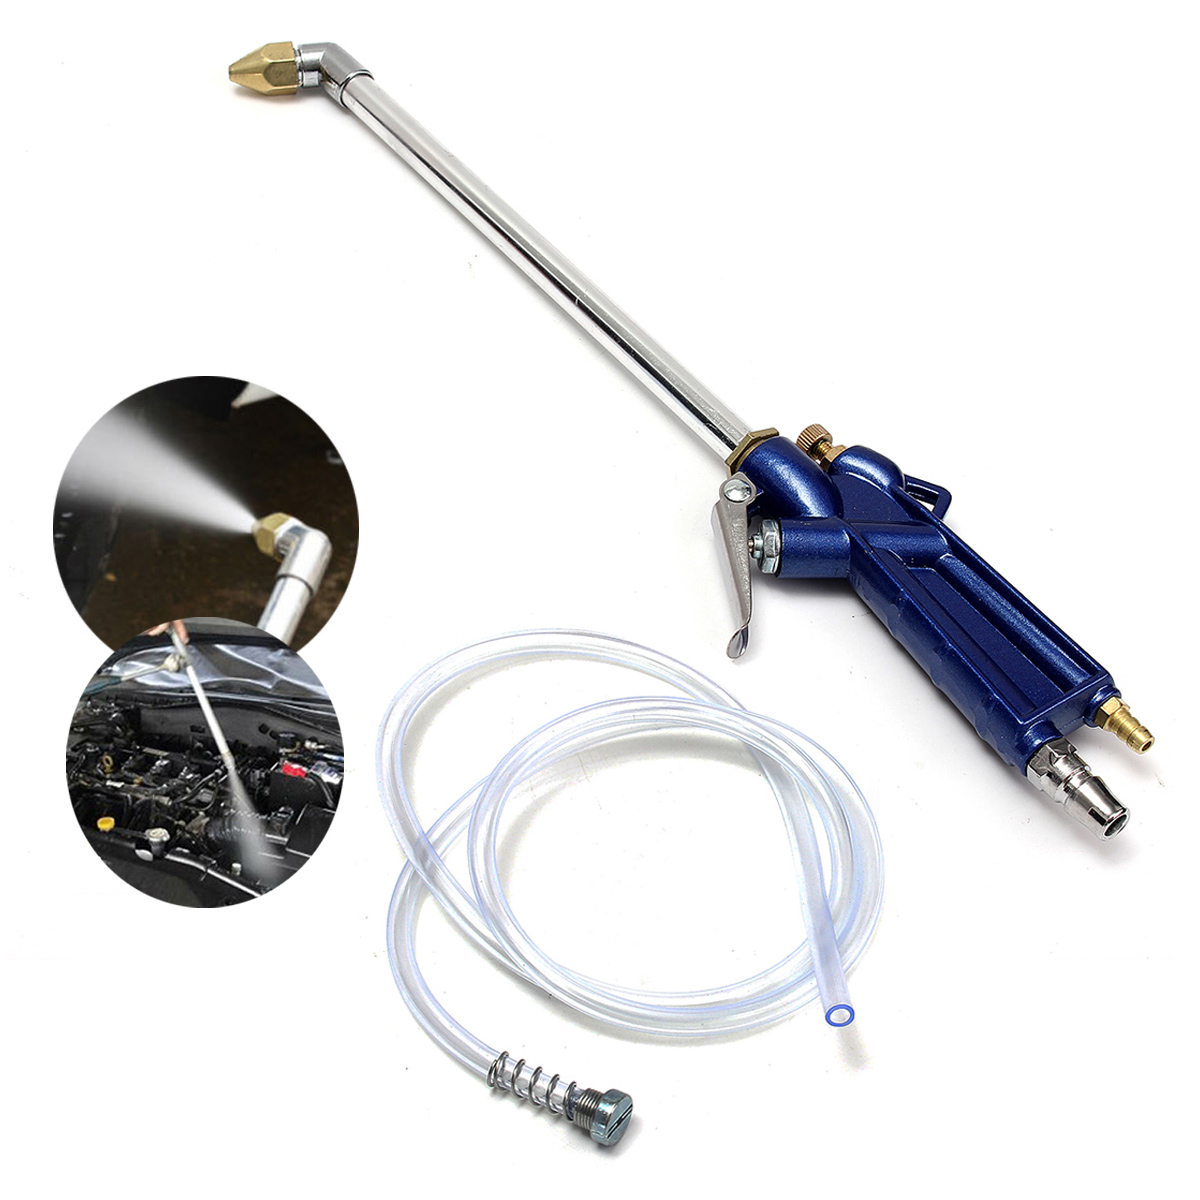 New 400mm Engine Oil Cleaning Tool Auto Automatic Cleaning Sprinkler Pneumatic Tool 100cm Hose Mechanical Parts Alloy Engine C